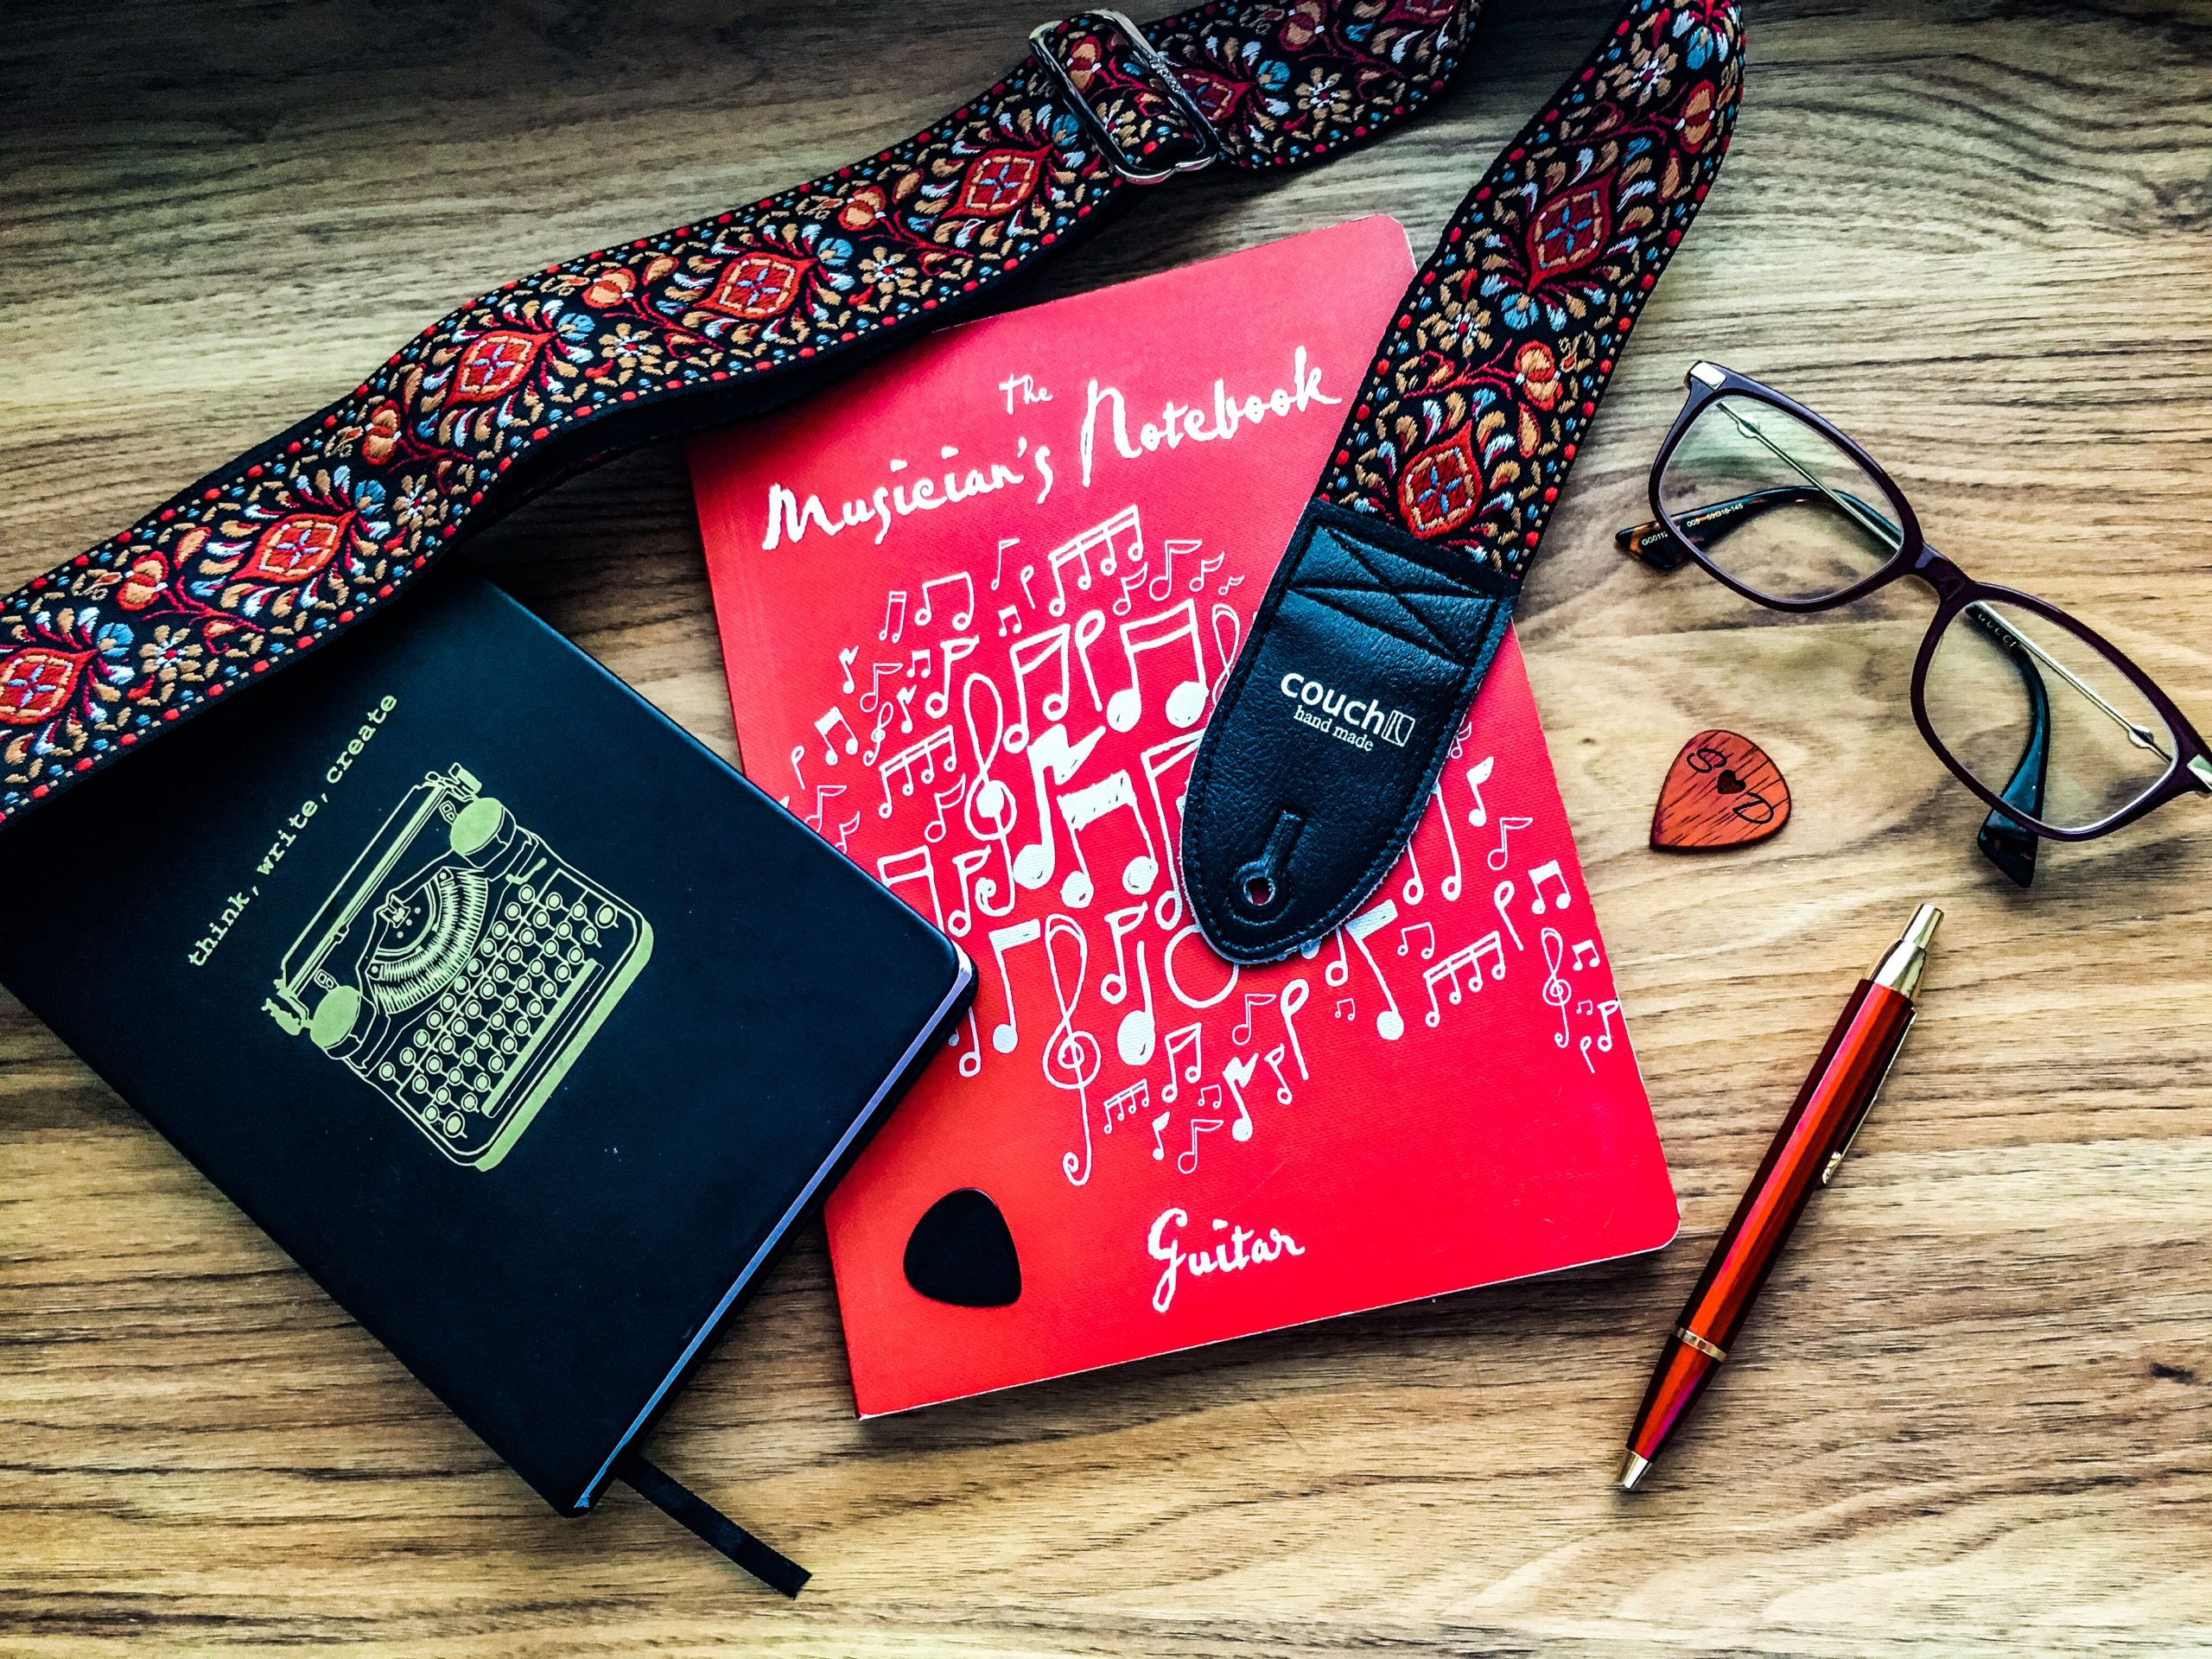 Sarah's creative hobbies keep her busy. And soon, she's about to pick up the guitar again. Picture of her guitar notebook, her writing notebook, a pen, glasses, guitar strap and picks